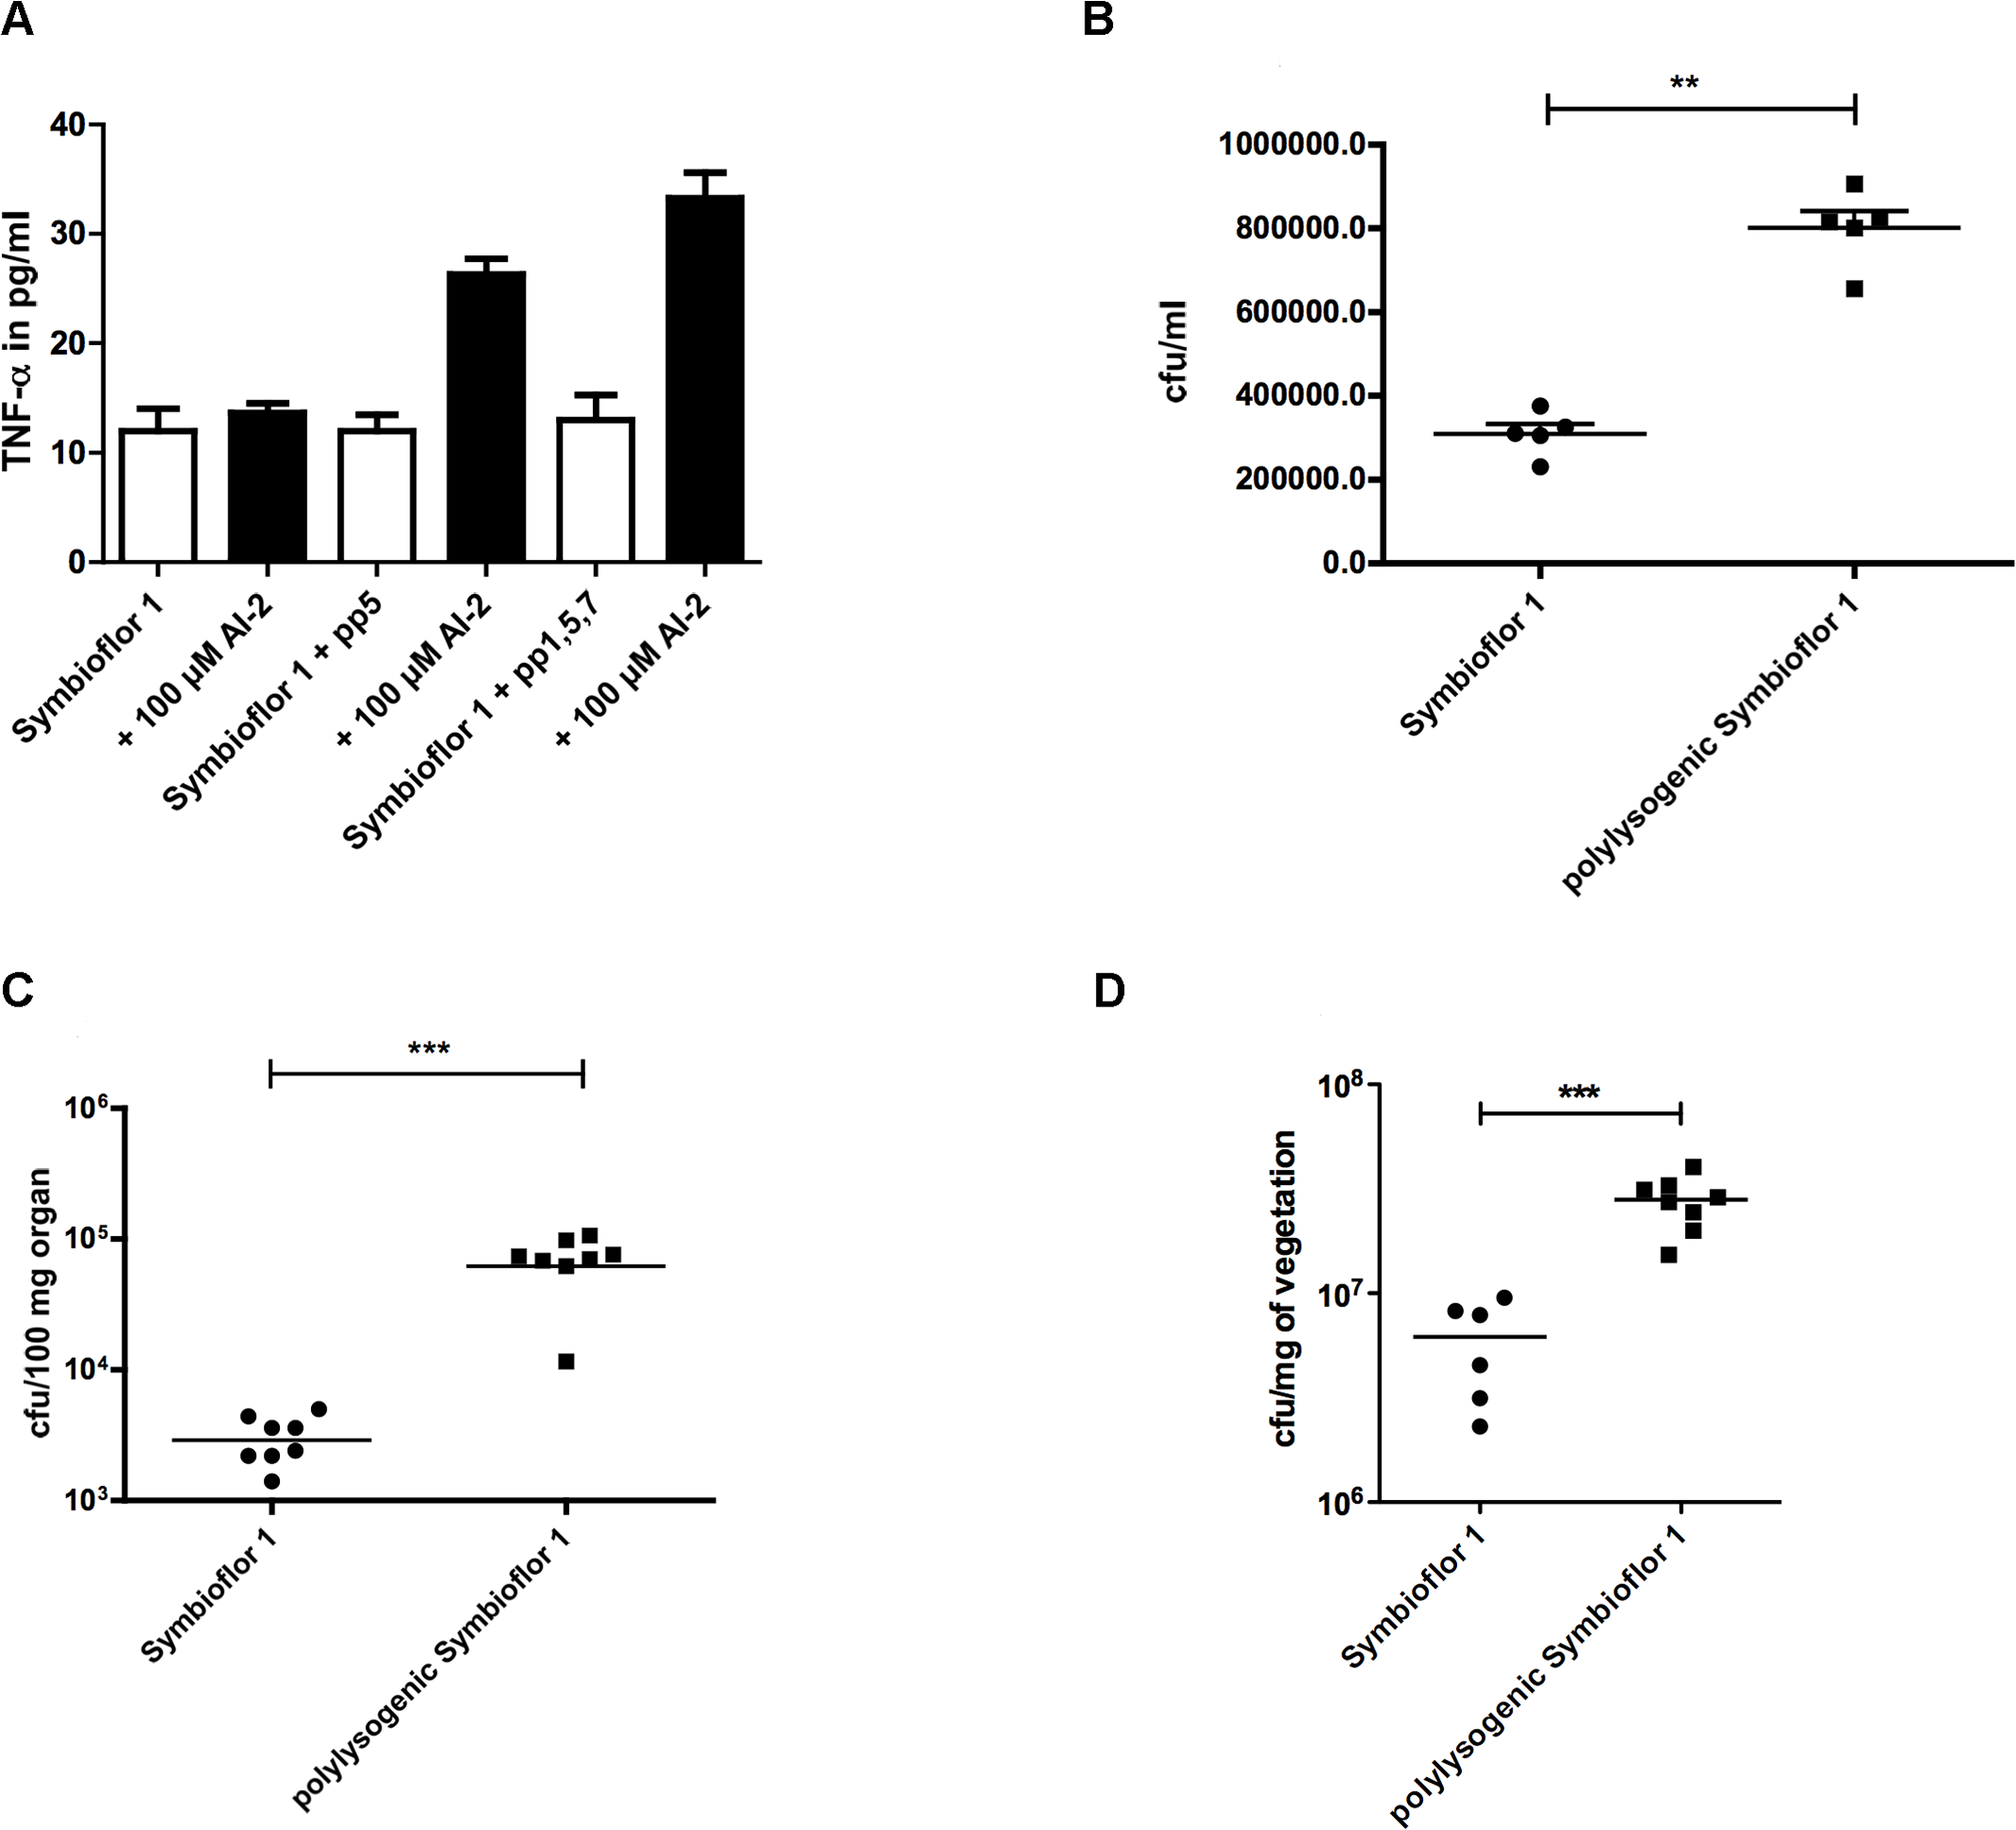 Influence of phages on virulence of <i>E. faecalis</i> Symbioflor 1: Virulence of polylysogenic Symbioflor 1 was compared to Symbioflor1 <i>in vitro</i>, a TNF-α assay (A) and an adherence assay to CaCo cells (B) was done.